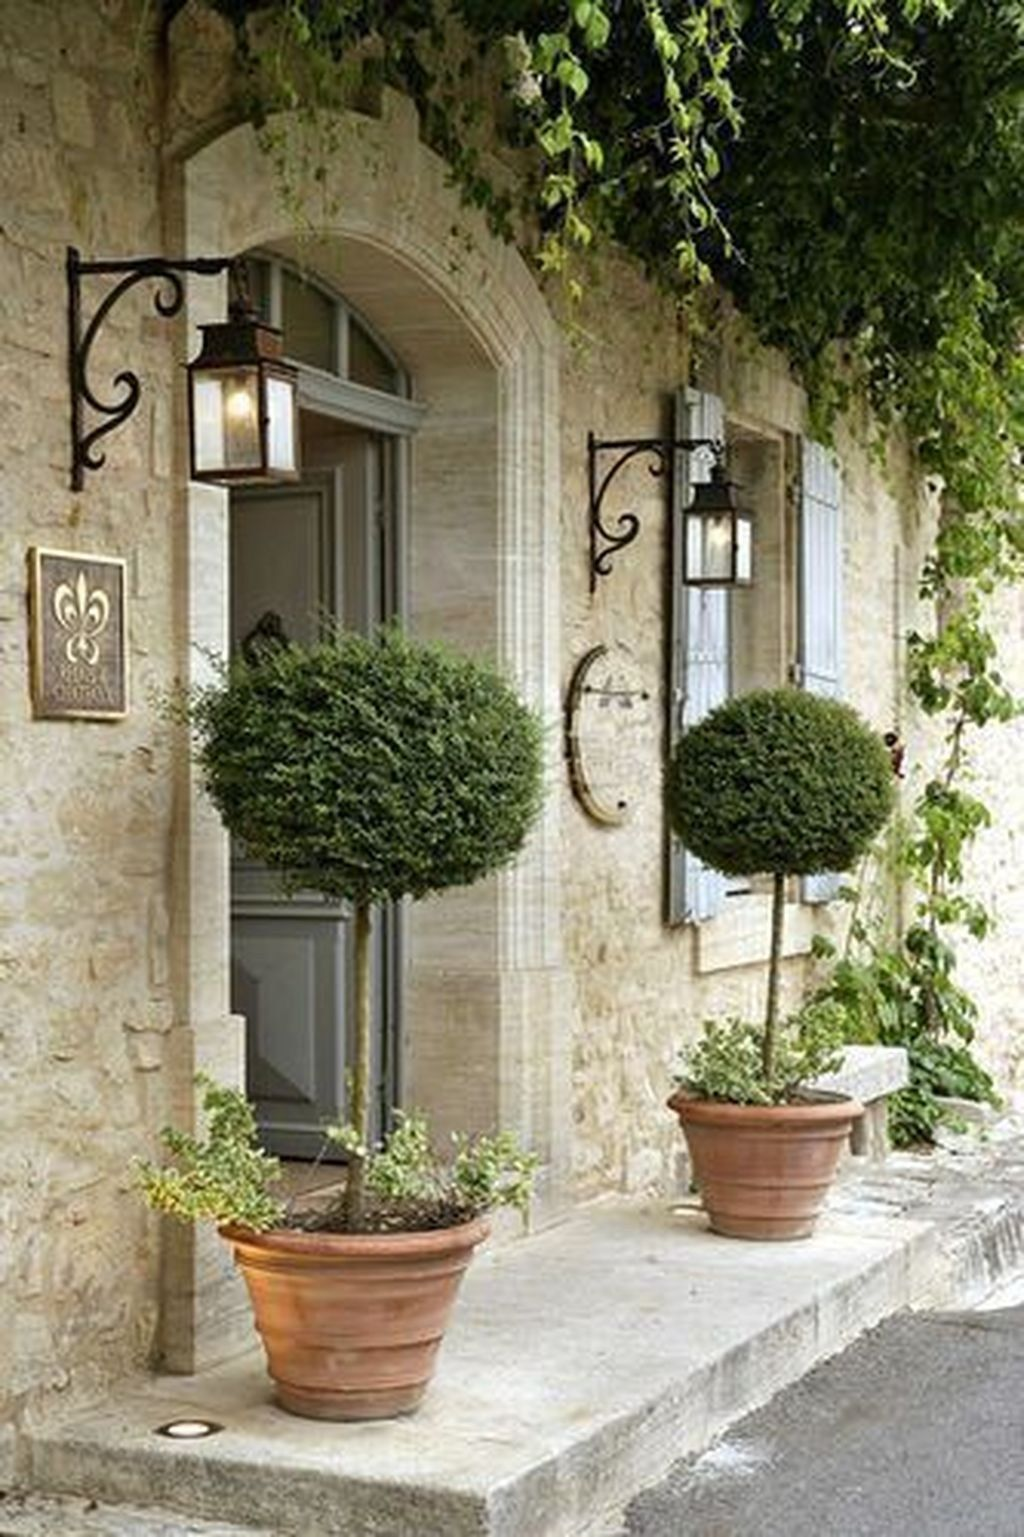 Amazing Country Decorating Ideas For Unique Home 967: Amazing French Country Home Decoration Ideas 04